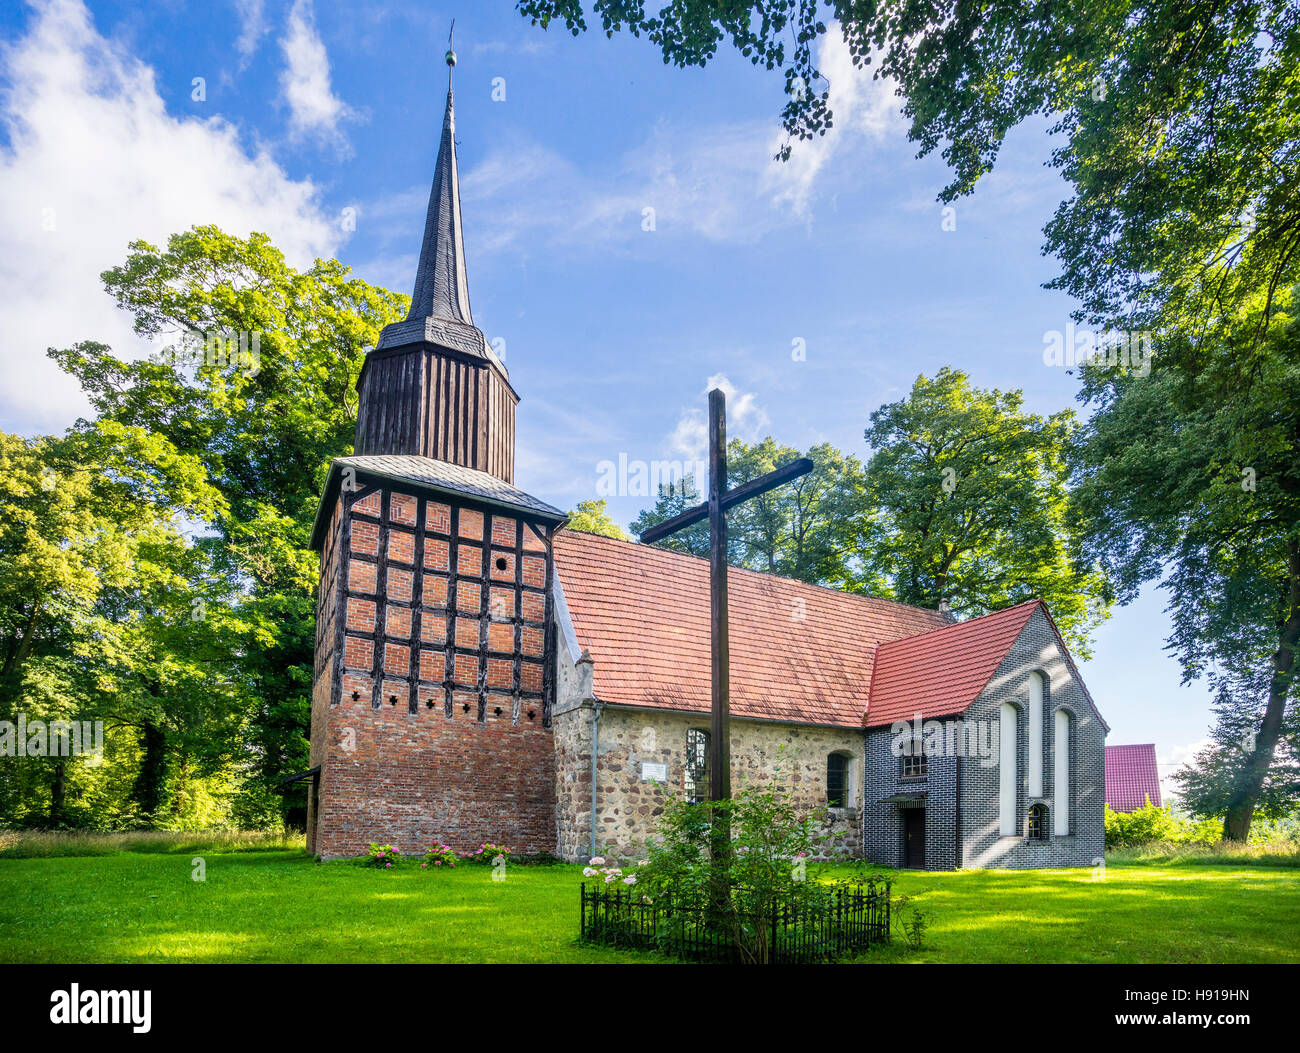 medieval village church of Ribokarty with half-timbered steeple toped by a barouque spire, West Pomerania, Poland - Stock Image